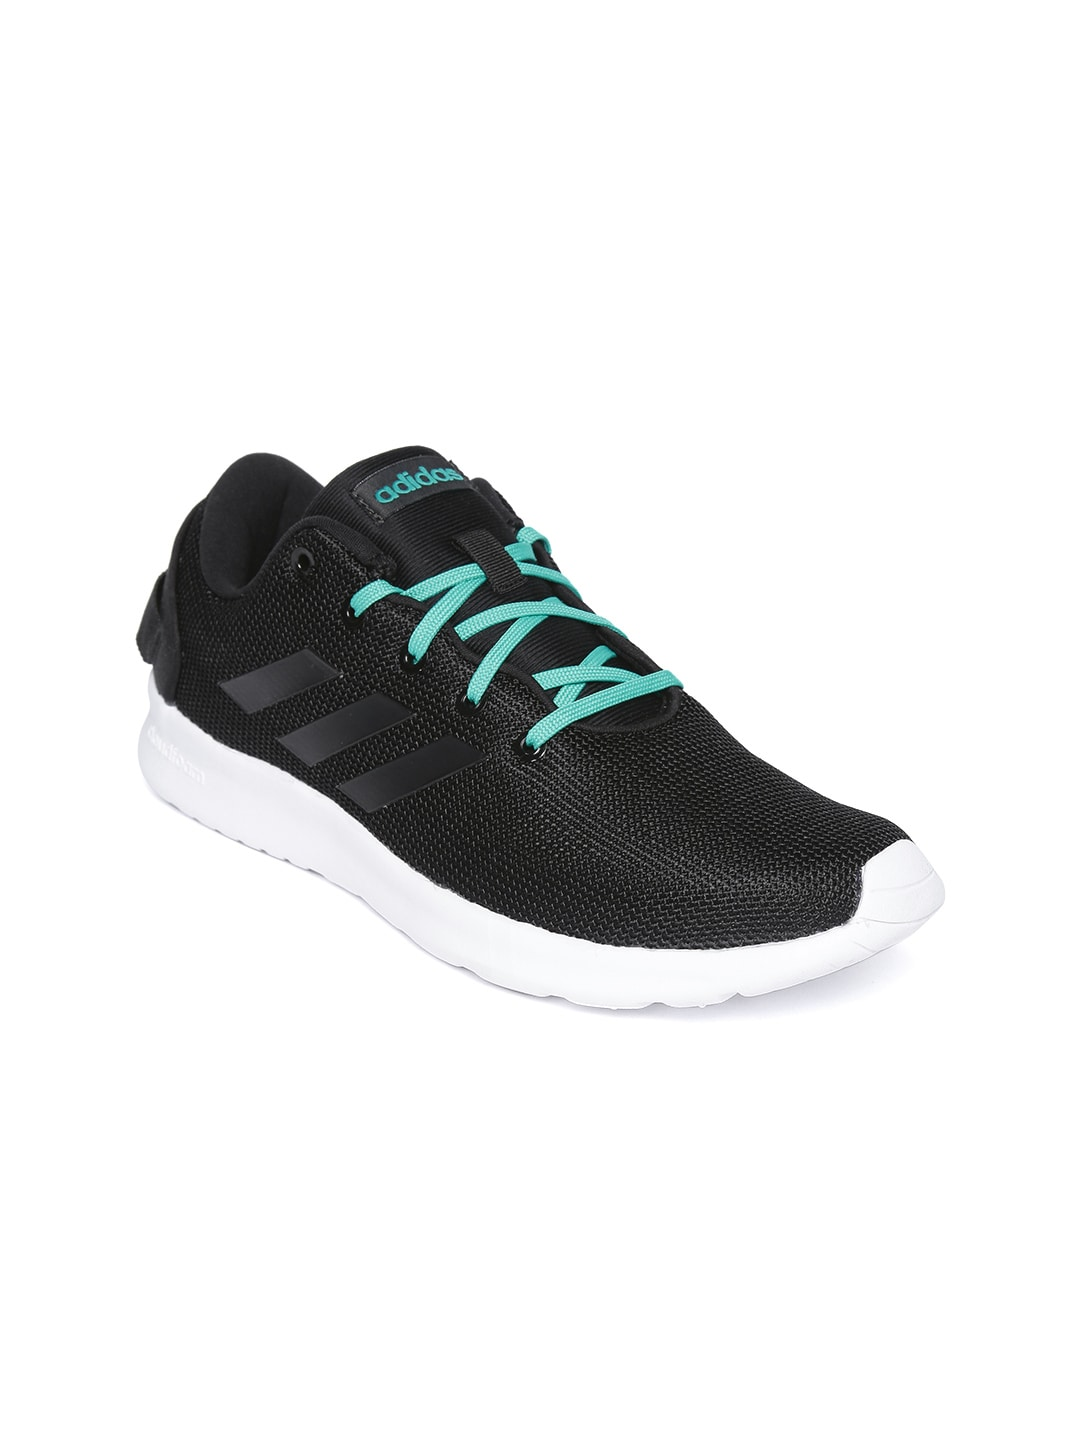 fab3a2491c30 Women s Adidas Shoes - Buy Adidas Shoes for Women Online in India